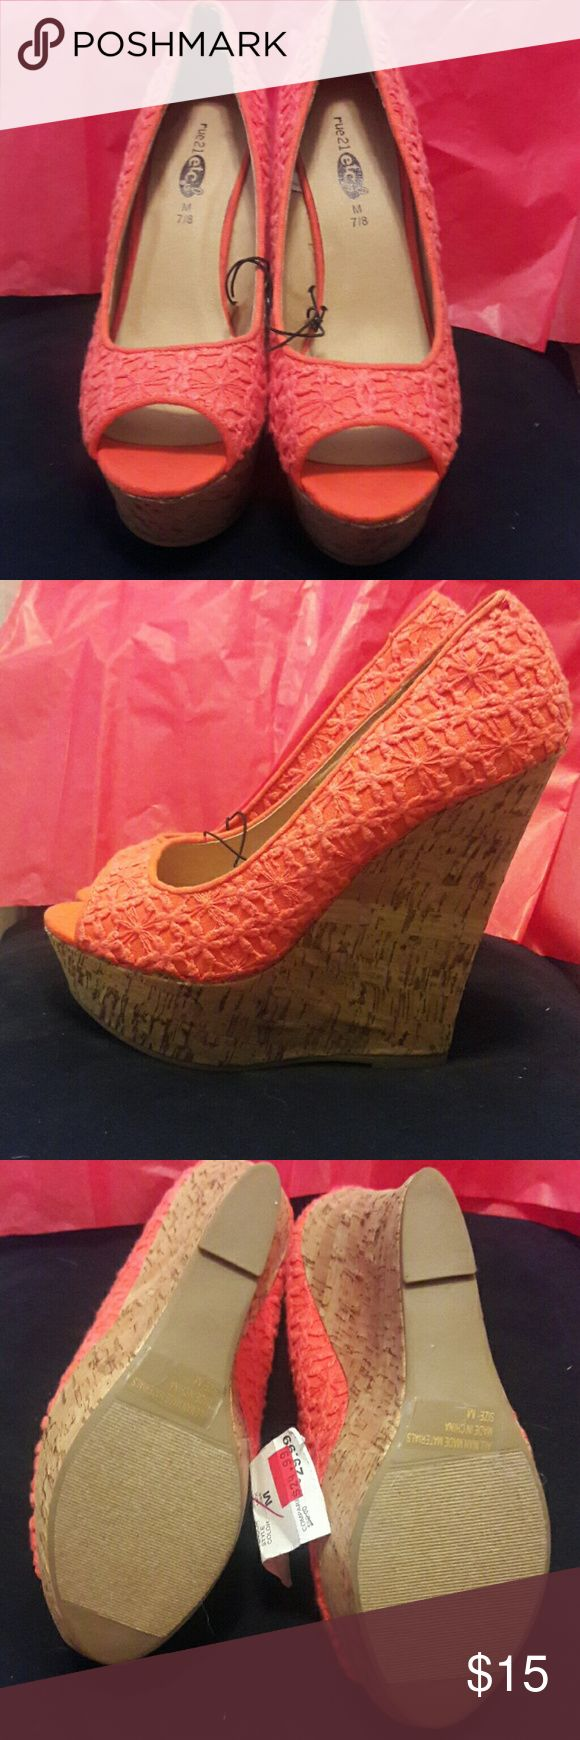 NWT Rue 21 platform cork  wedges in coral NWT Platform cork wedges in coral. Never worn  4 1/2 platforms with flowers embroidered accents. Rue 21 Shoes Platforms